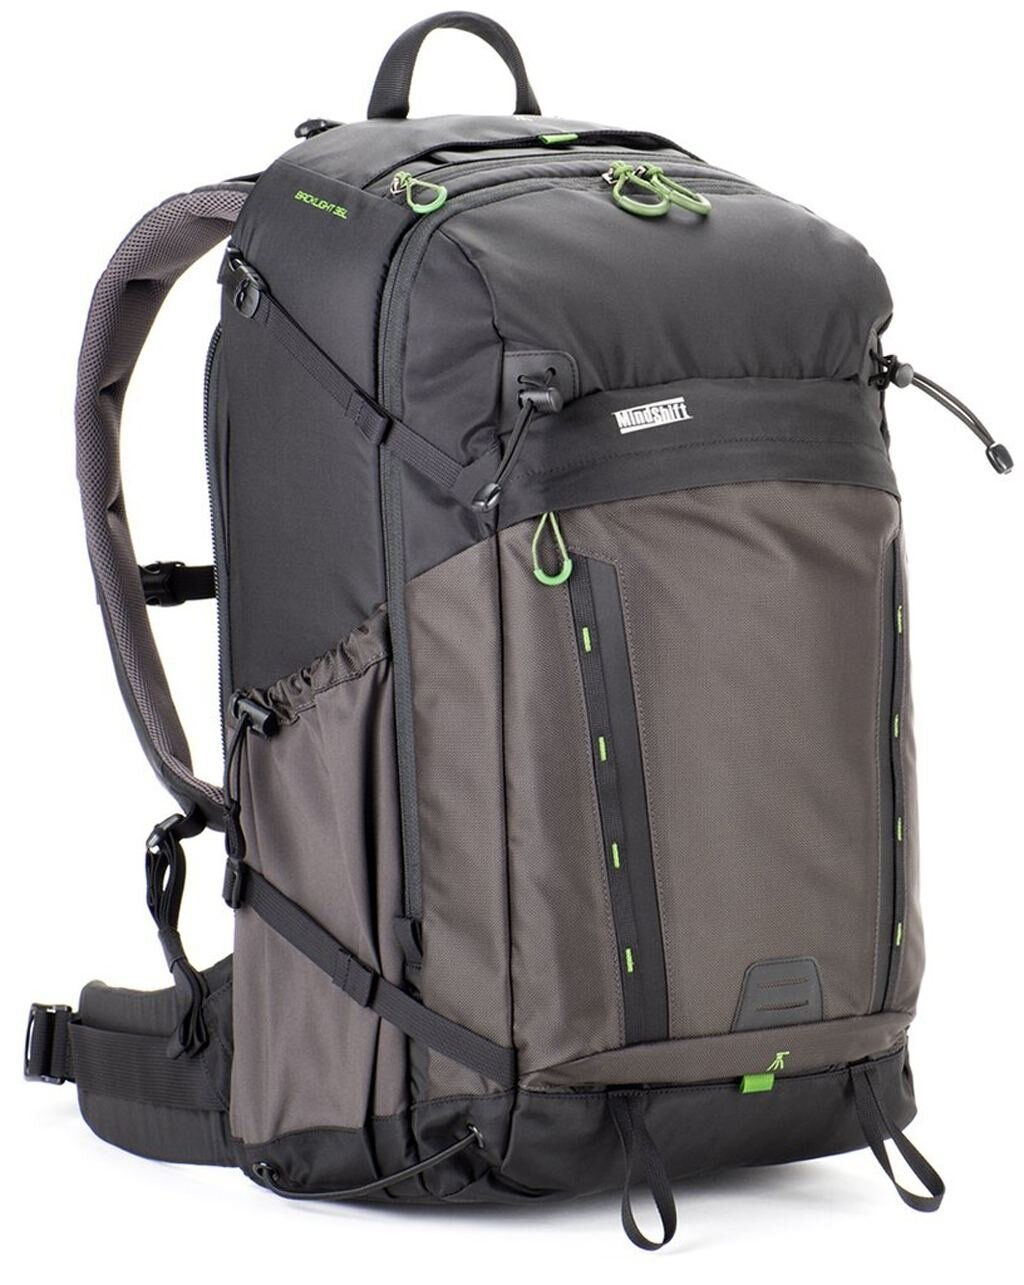 MindShift Gear BackLight 36L Outdoor Photo Daypack Charcoal